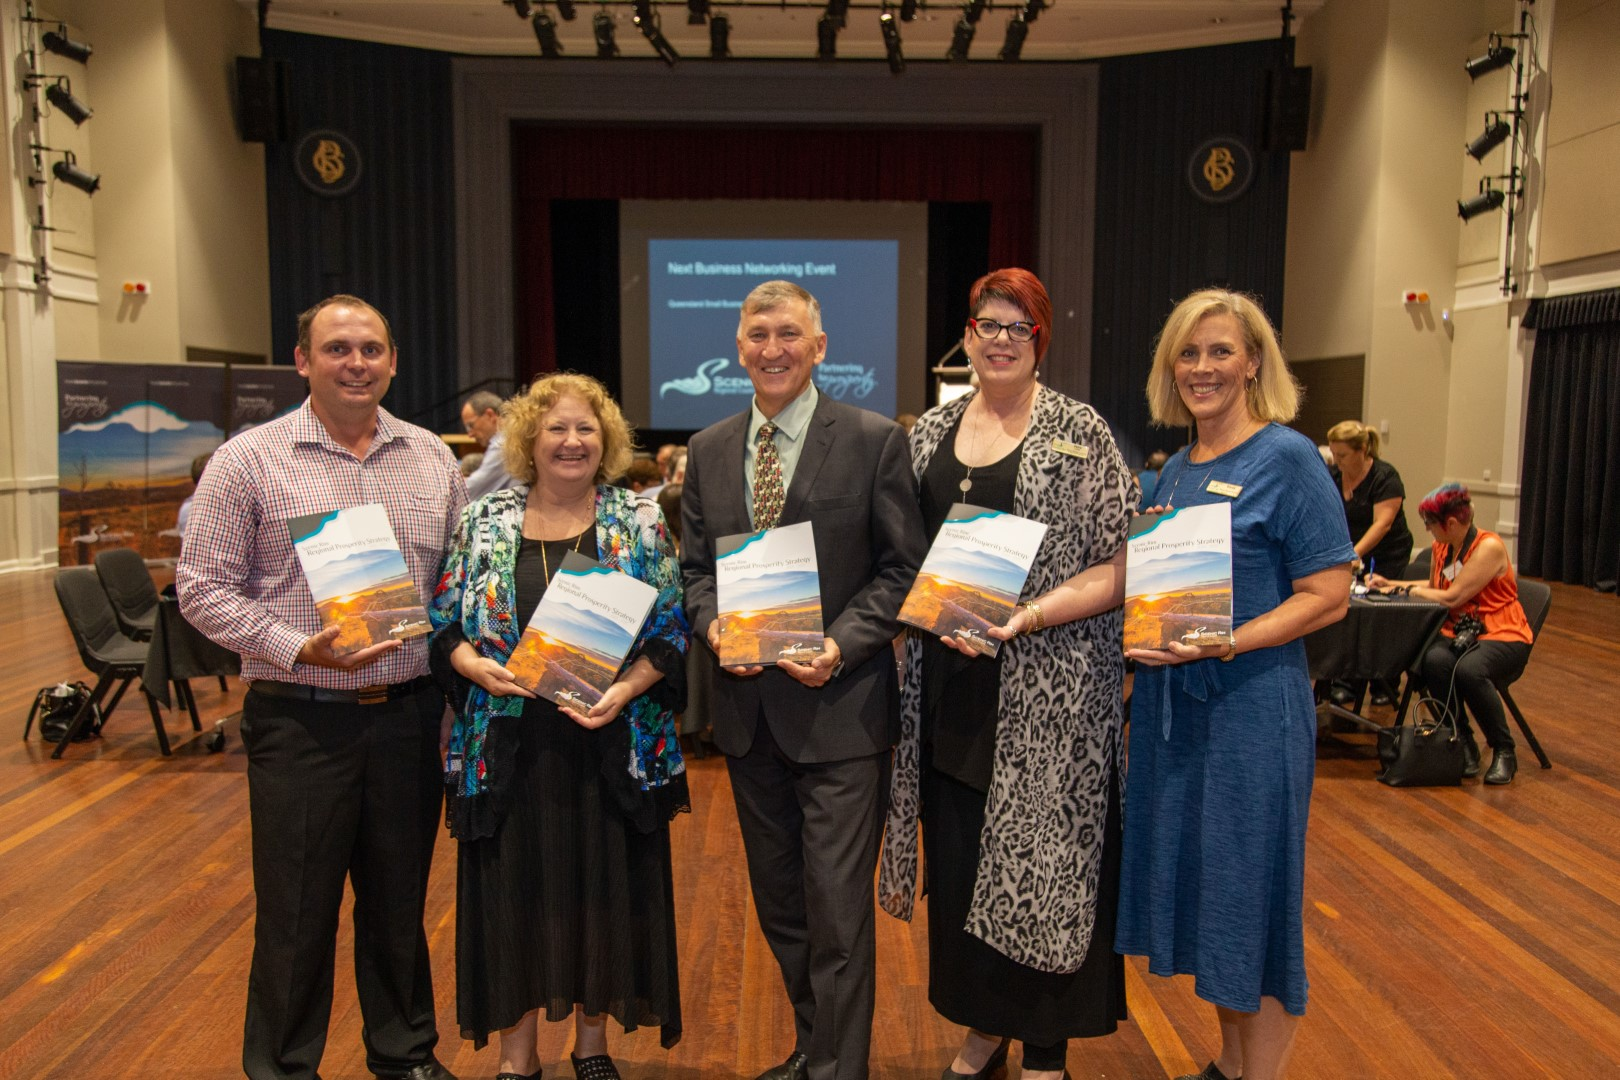 Cameron Thomas, Donna Foster, Mayor Greg Christensen, Debra Howe and Brenda Walker of Scenic Rim Regional Council celebrate the launch of the Regional Prosperity Strategy at the February business breakfast.